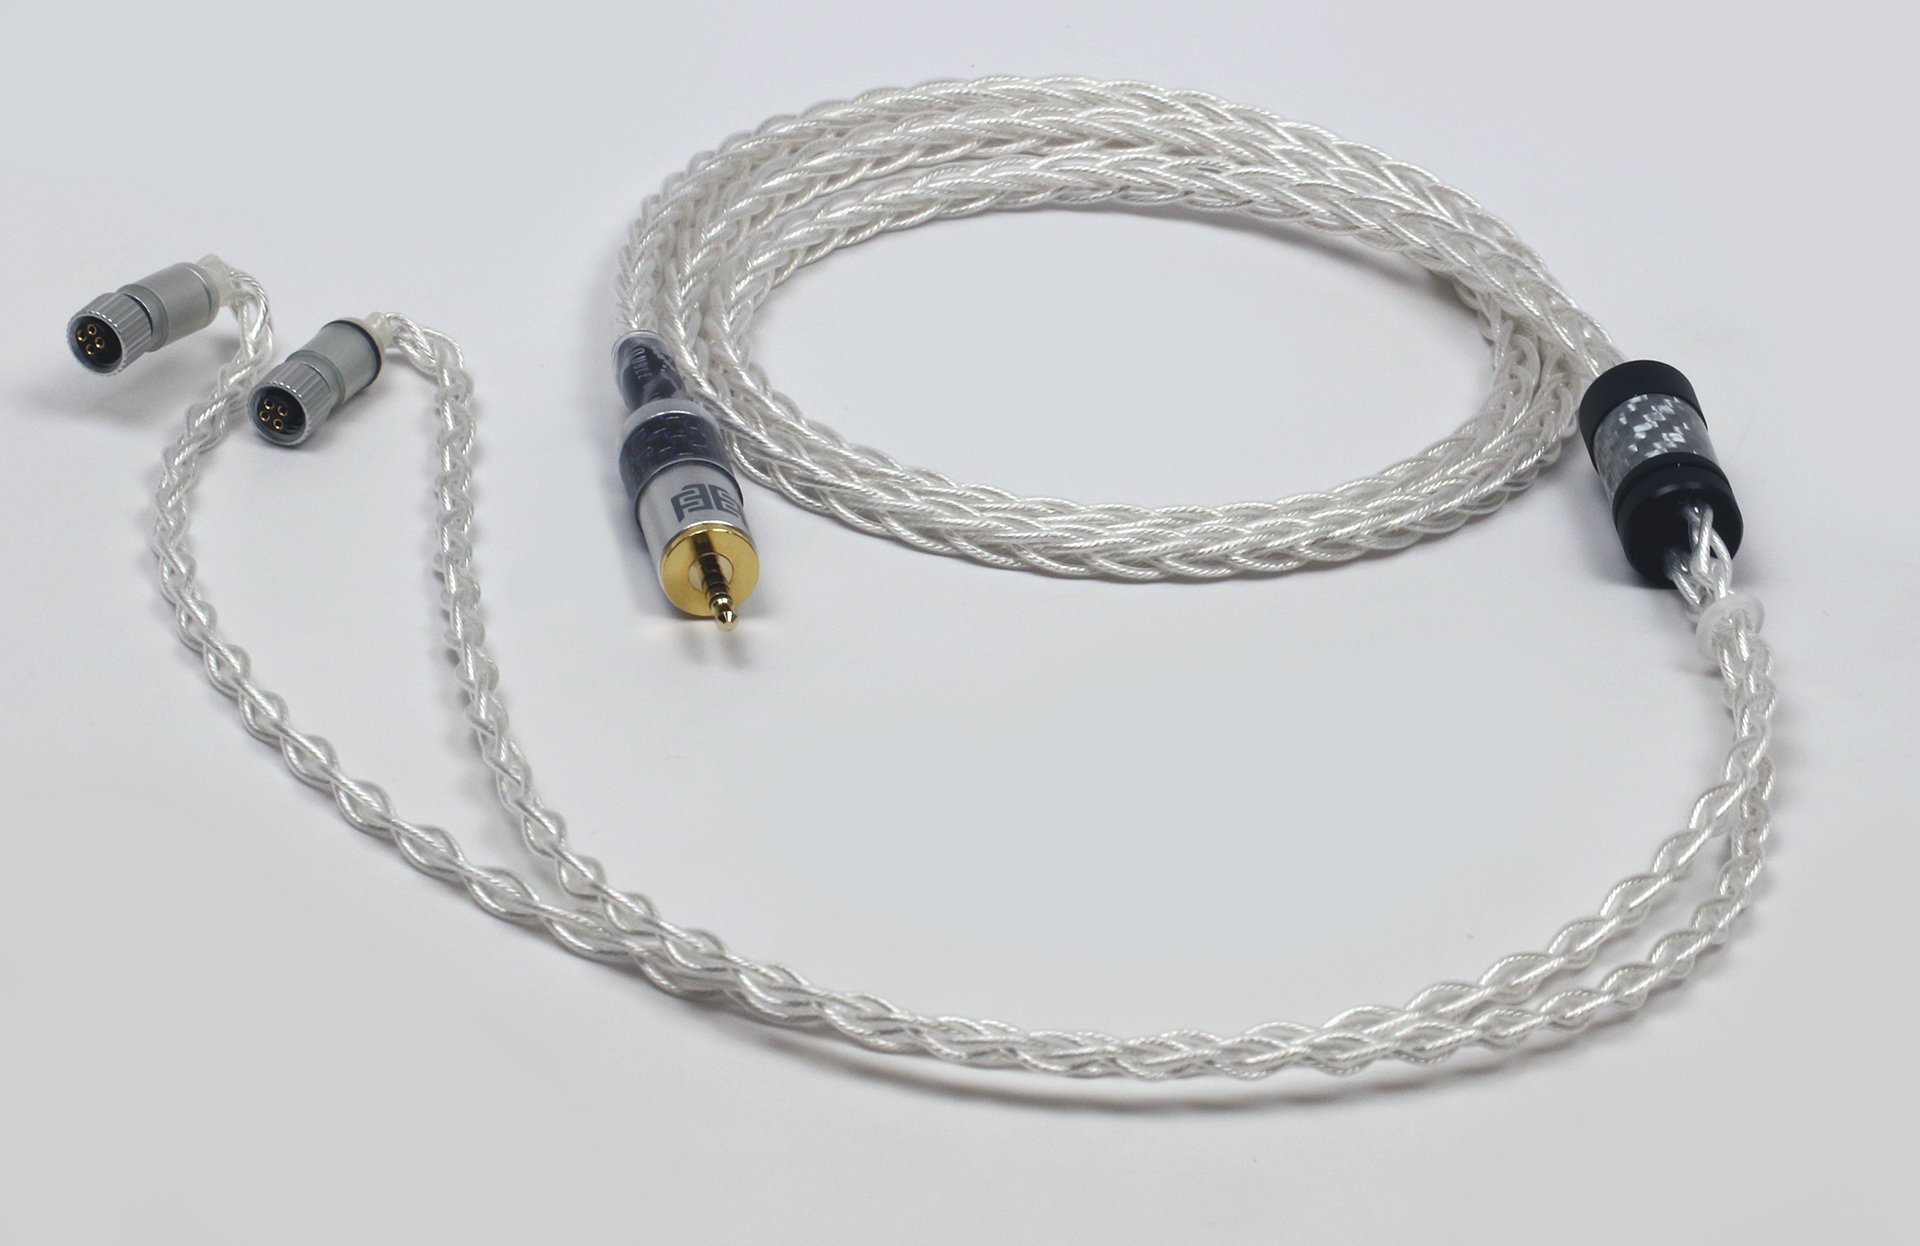 Symbiote Sp Occ Silver Litz Iem Cable For Jh Sirens Series